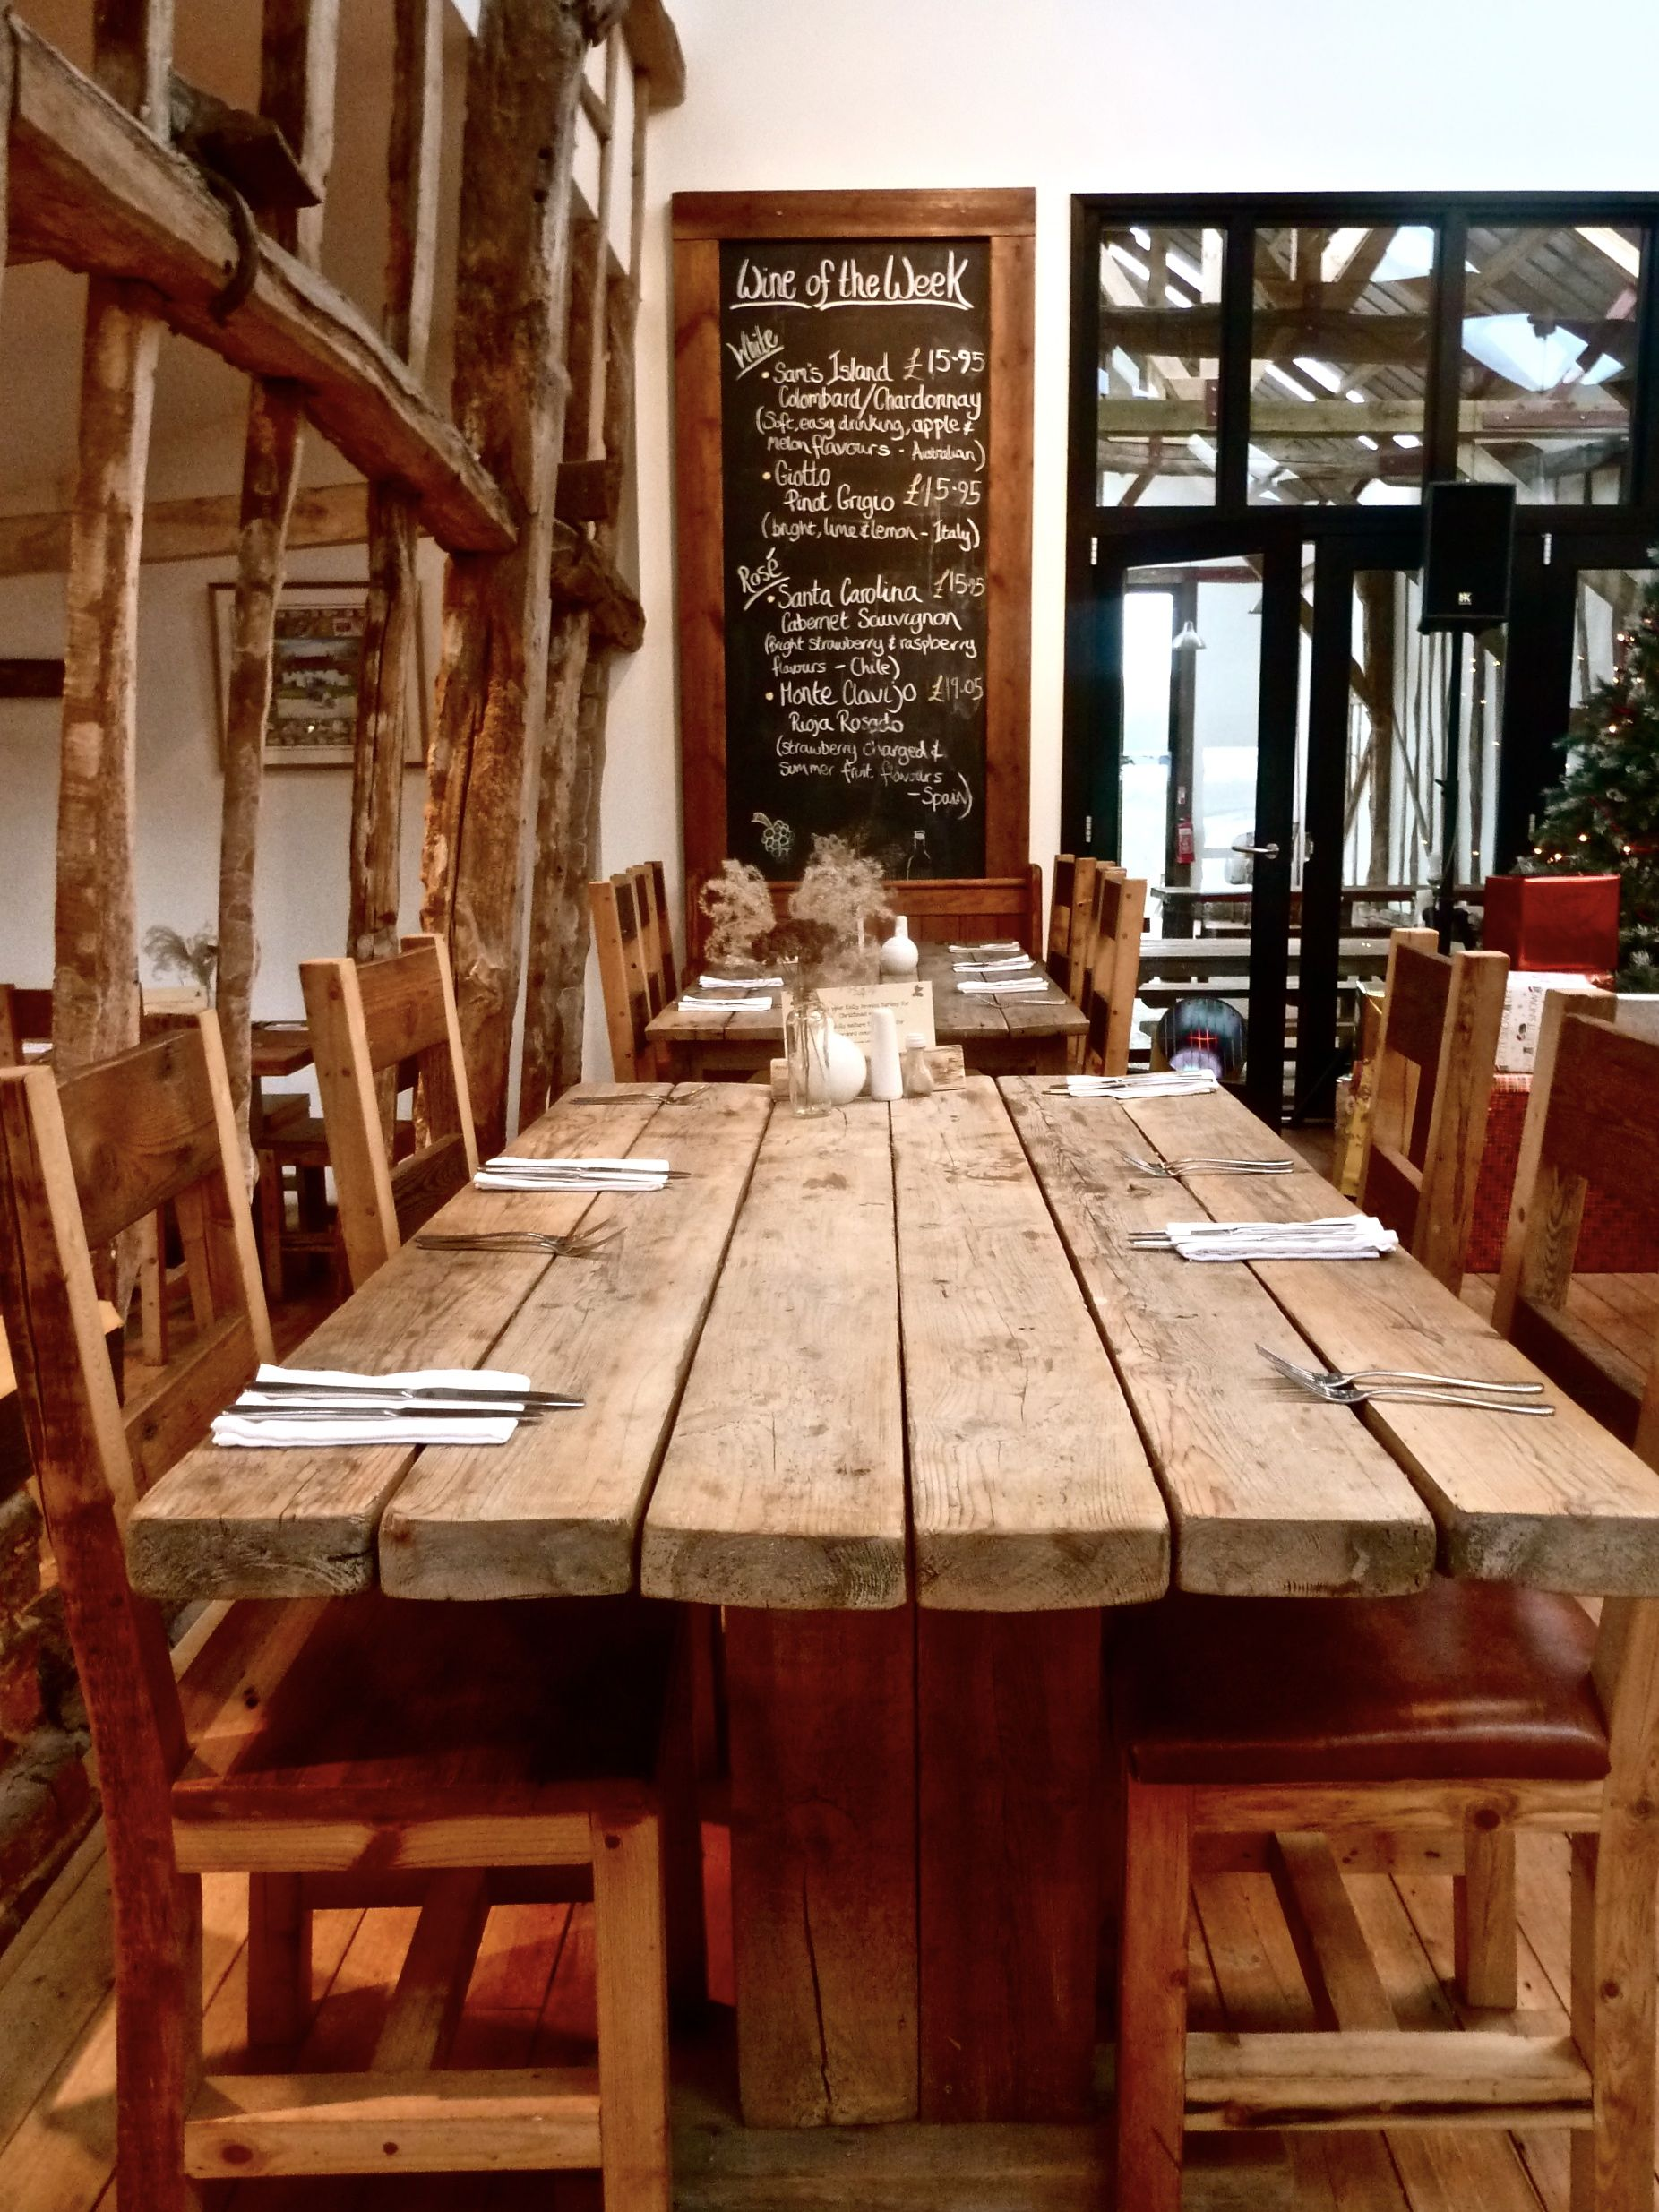 wyerworks, chunky, rustic and beautiful one off table made from oldwyerworks, chunky, rustic and beautiful one off table made from old barn beams for jimmys farm in suffolk www wyerworks com **would use benches for seats